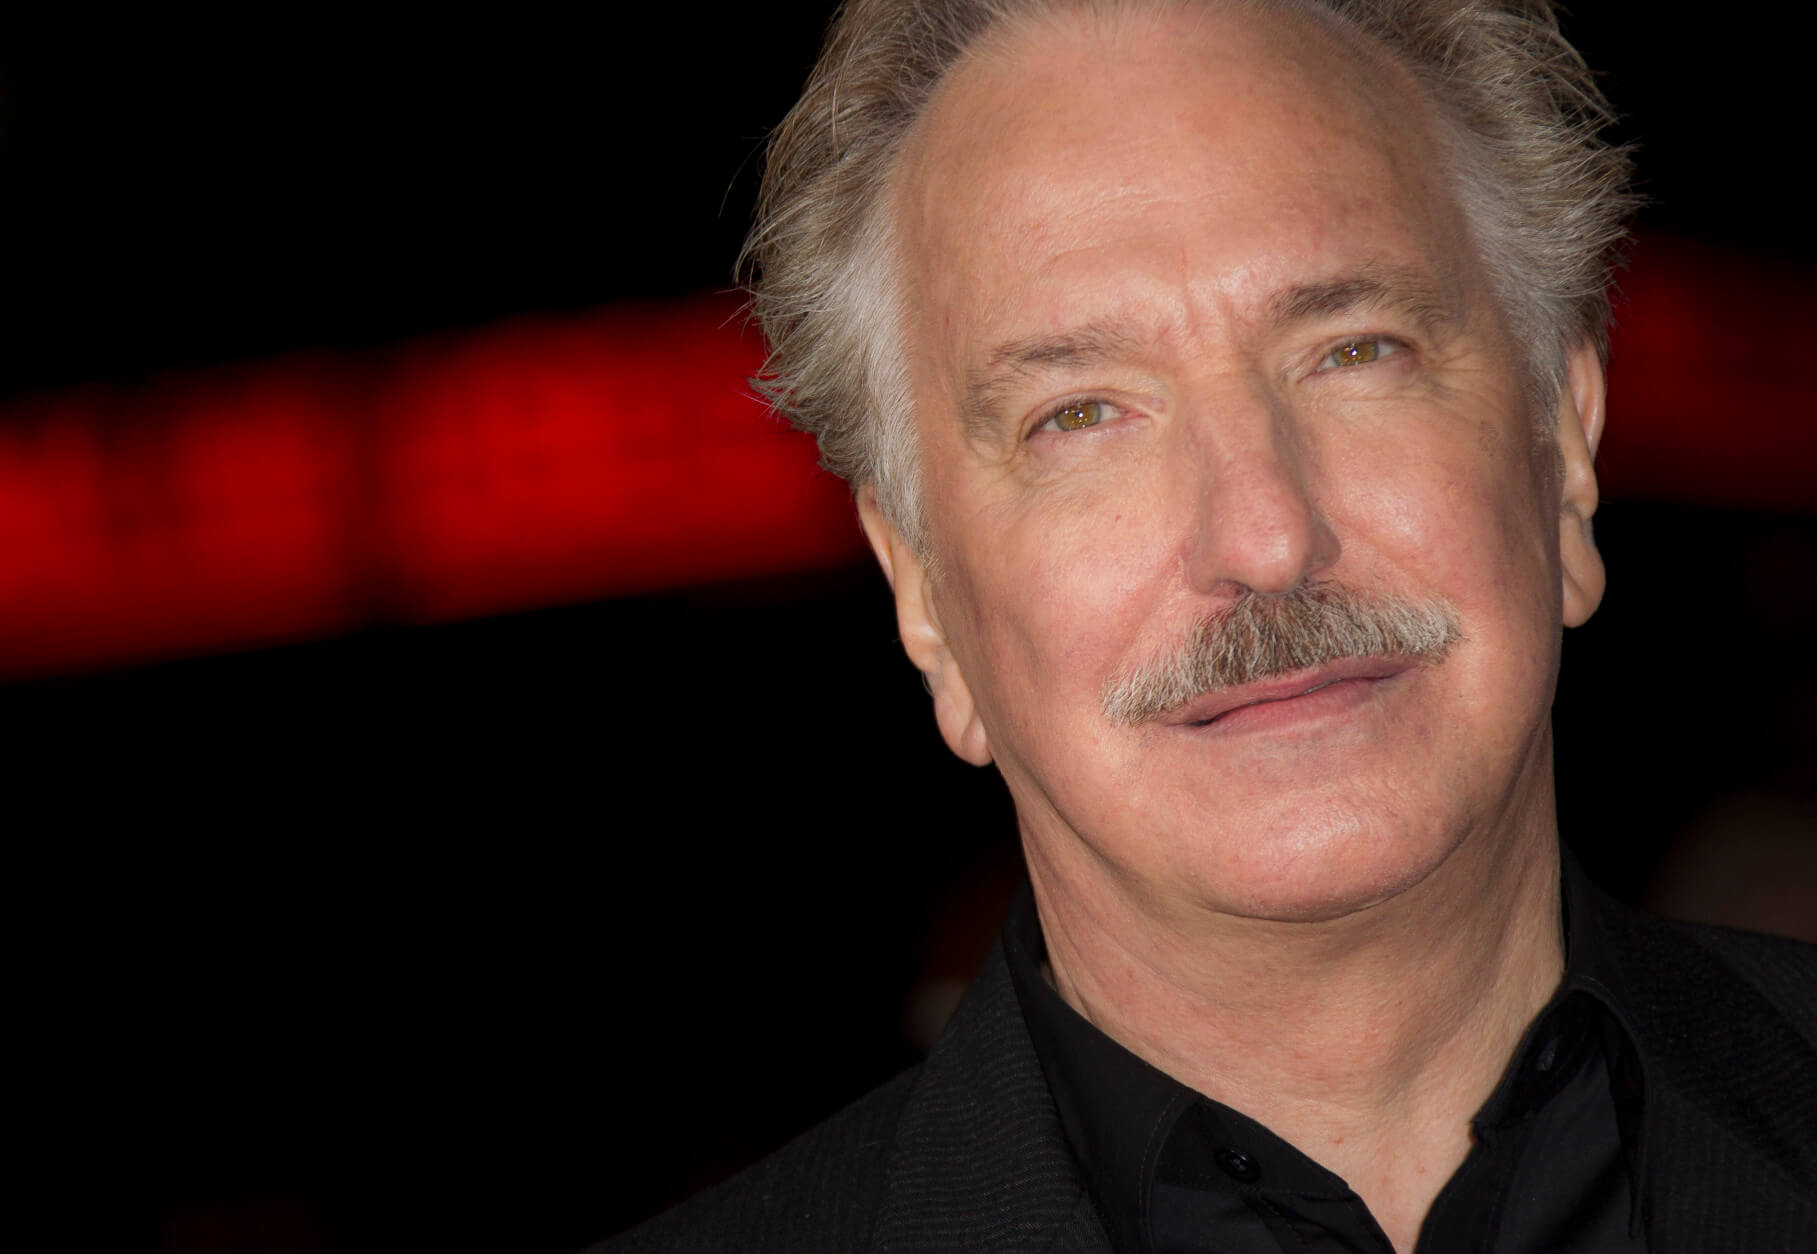 "FILE - In this Wednesday, Nov. 7, 2012 file photo, actor Alan Rickman arrives for the World Premiere of Gambit at the Empire cinema in central London.  British actor Alan Rickman, whose career ranged from Britain's Royal Shakespeare Company to the ""Harry Potter"" films, has died. He was 69.  Rickman's family said Thursday, Jan. 14, 2016 that the actor had died after a battle with cancer.   (Photo by Joel Ryan/Invision/AP, File)"